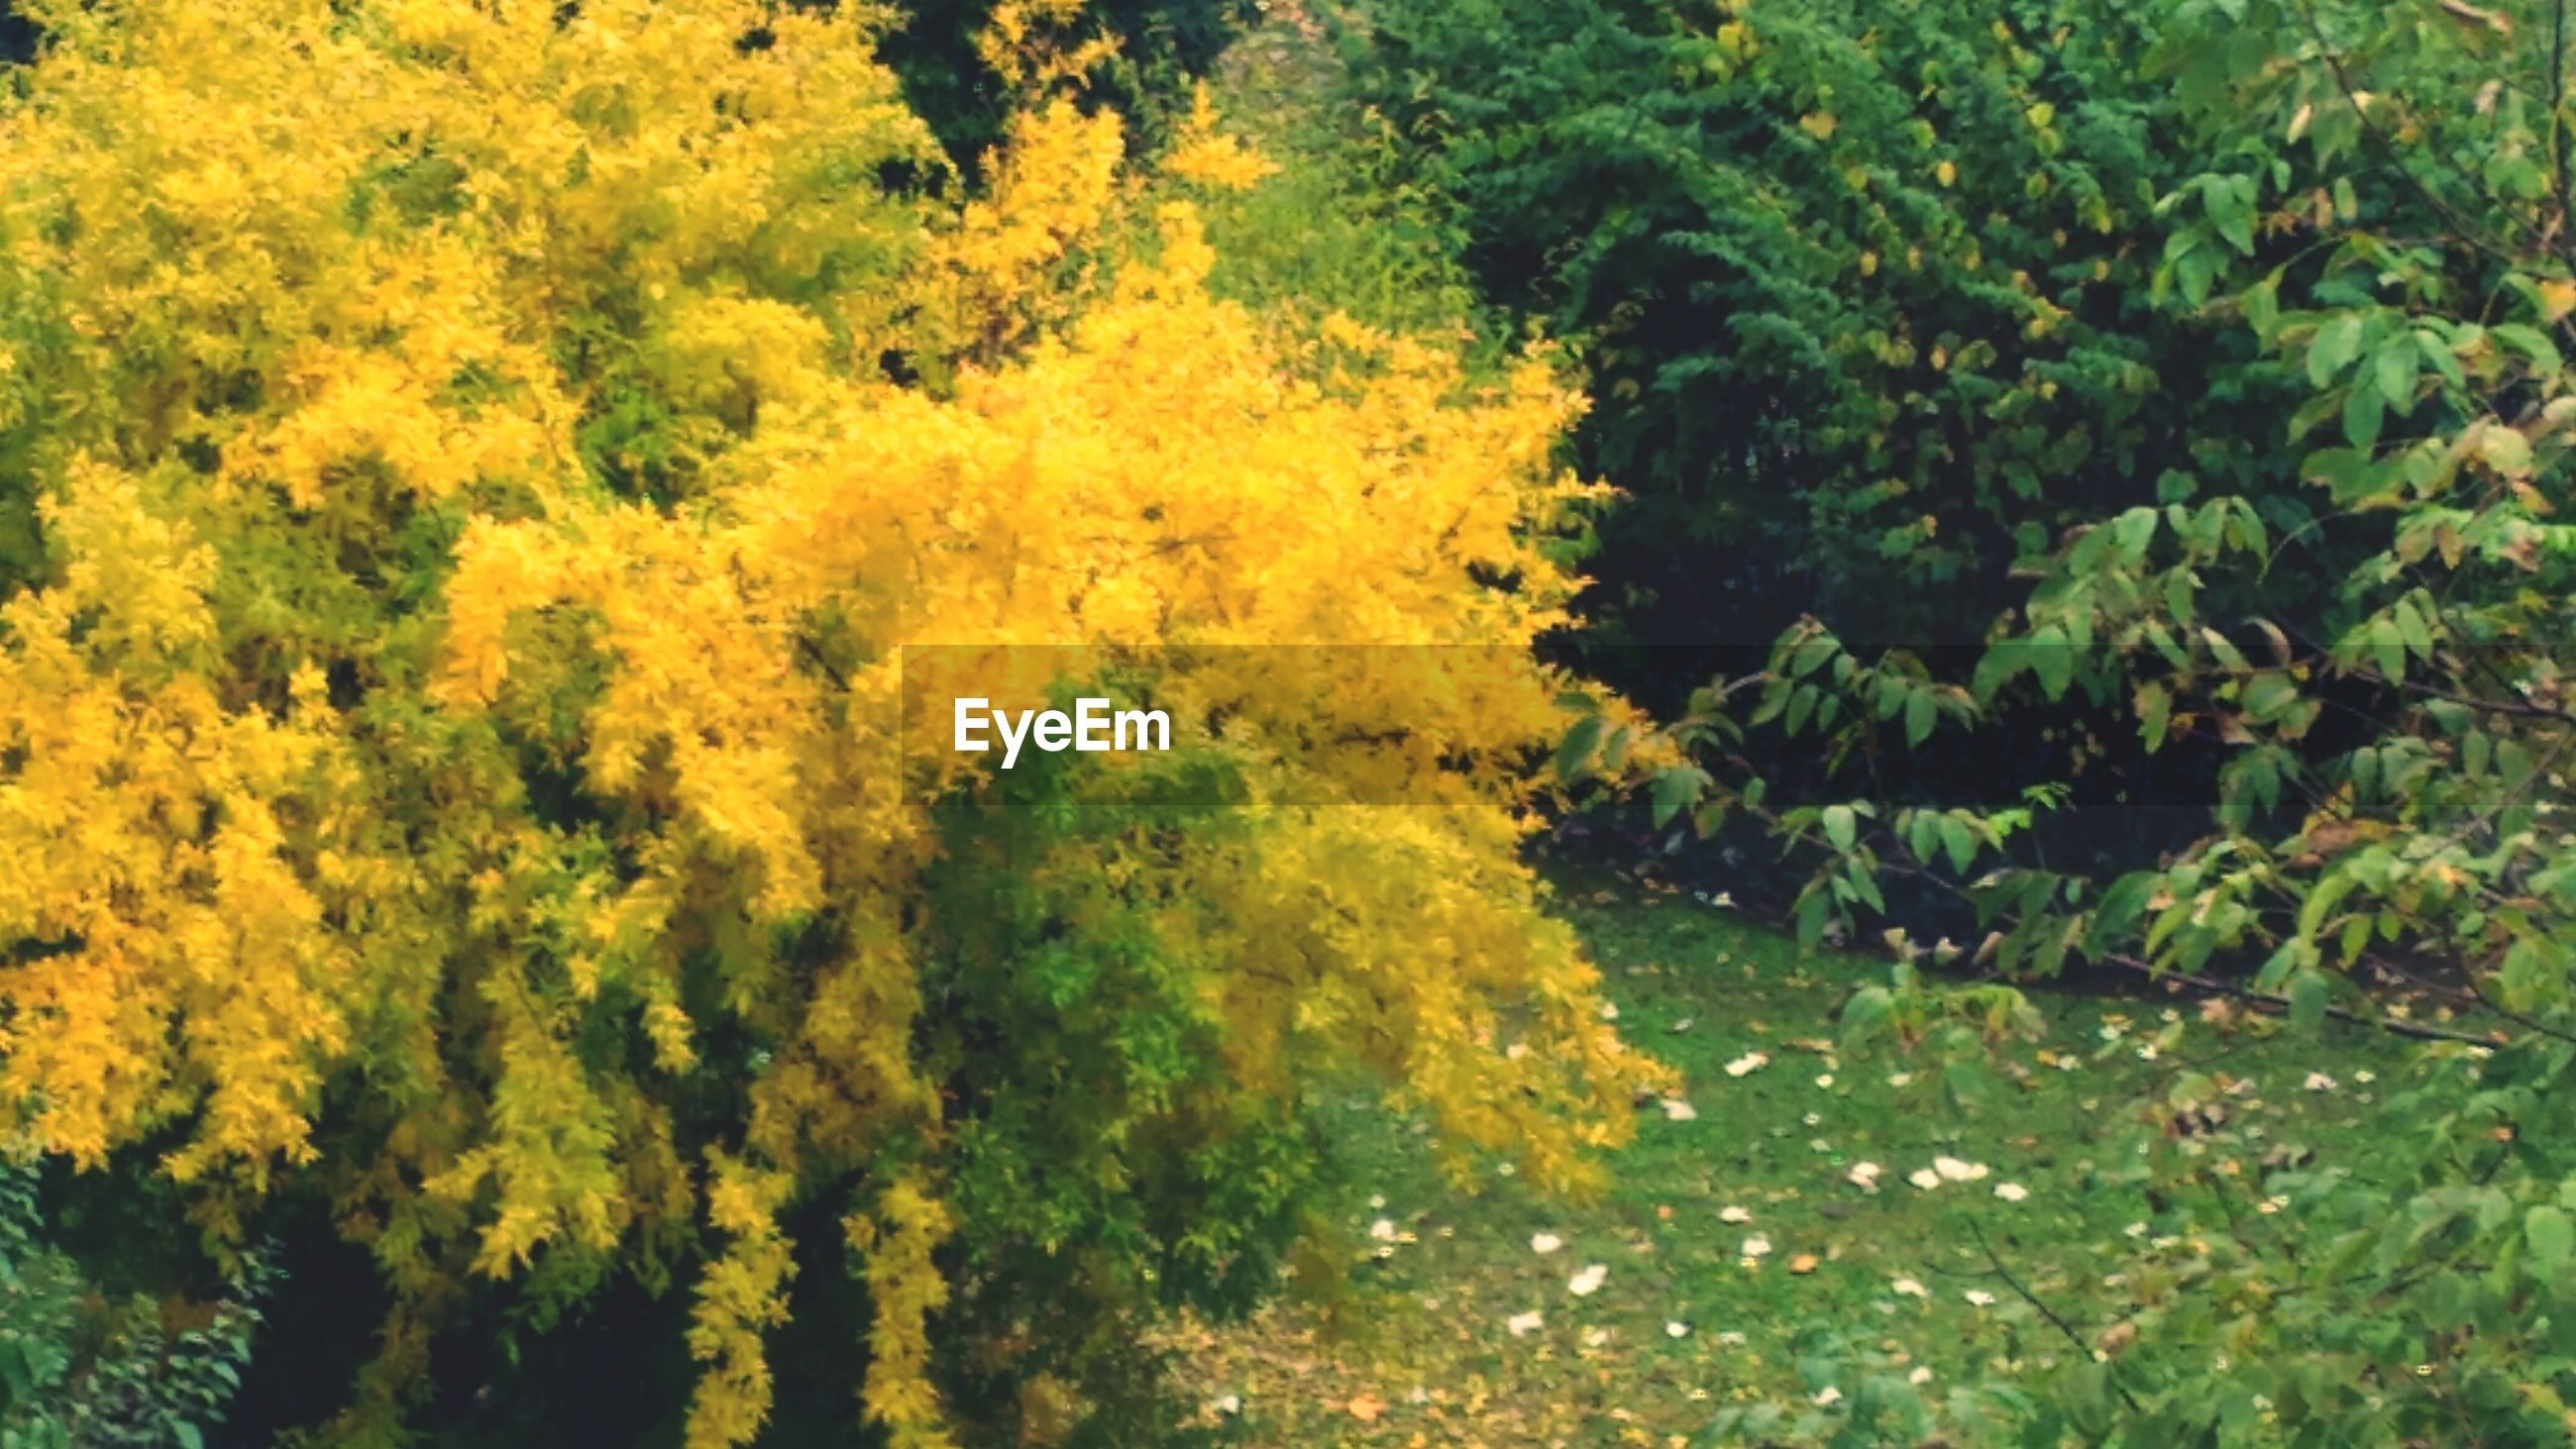 YELLOW TREES IN FOREST